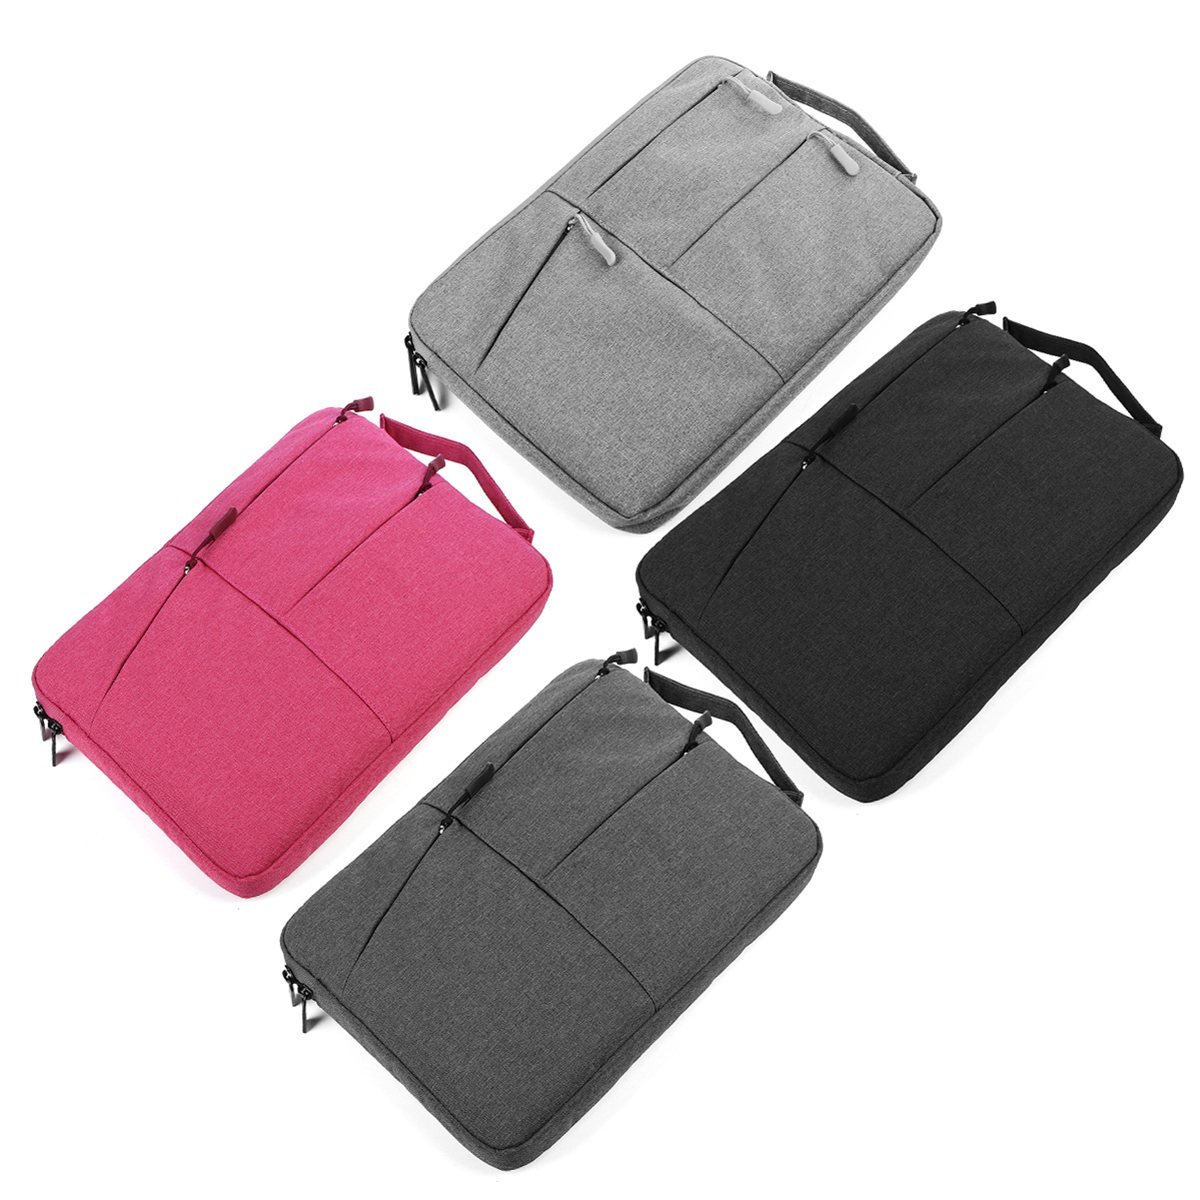 15Inch Waterproof Nylon Laptop Sleeve Laptop Bag Case for MacBook Pro Bag with Zipper for Notebook Air Shockproof Business